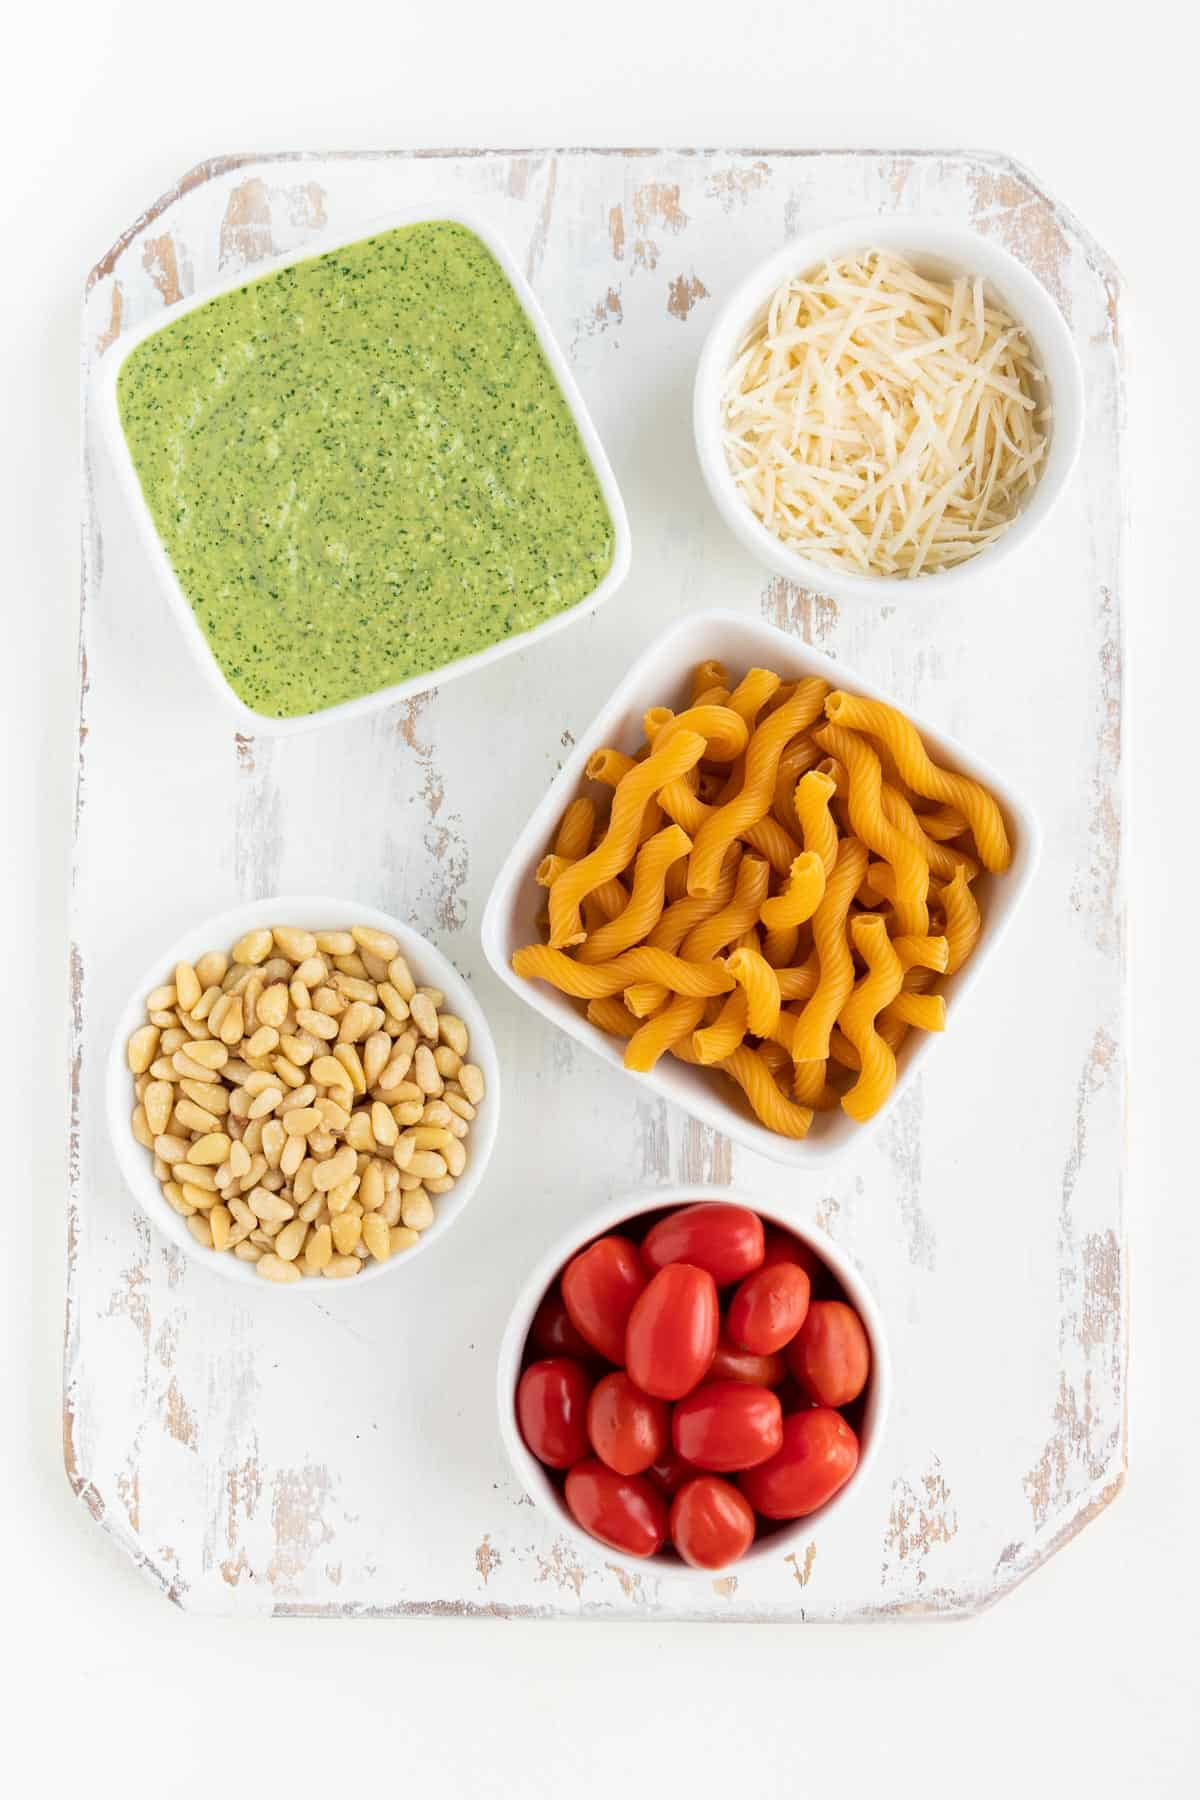 distressed white wood cutting board topped with small bowls of pesto sauce, vegan parmesan cheese, pine nuts, cherry tomatoes, and cavatappi pasta shells